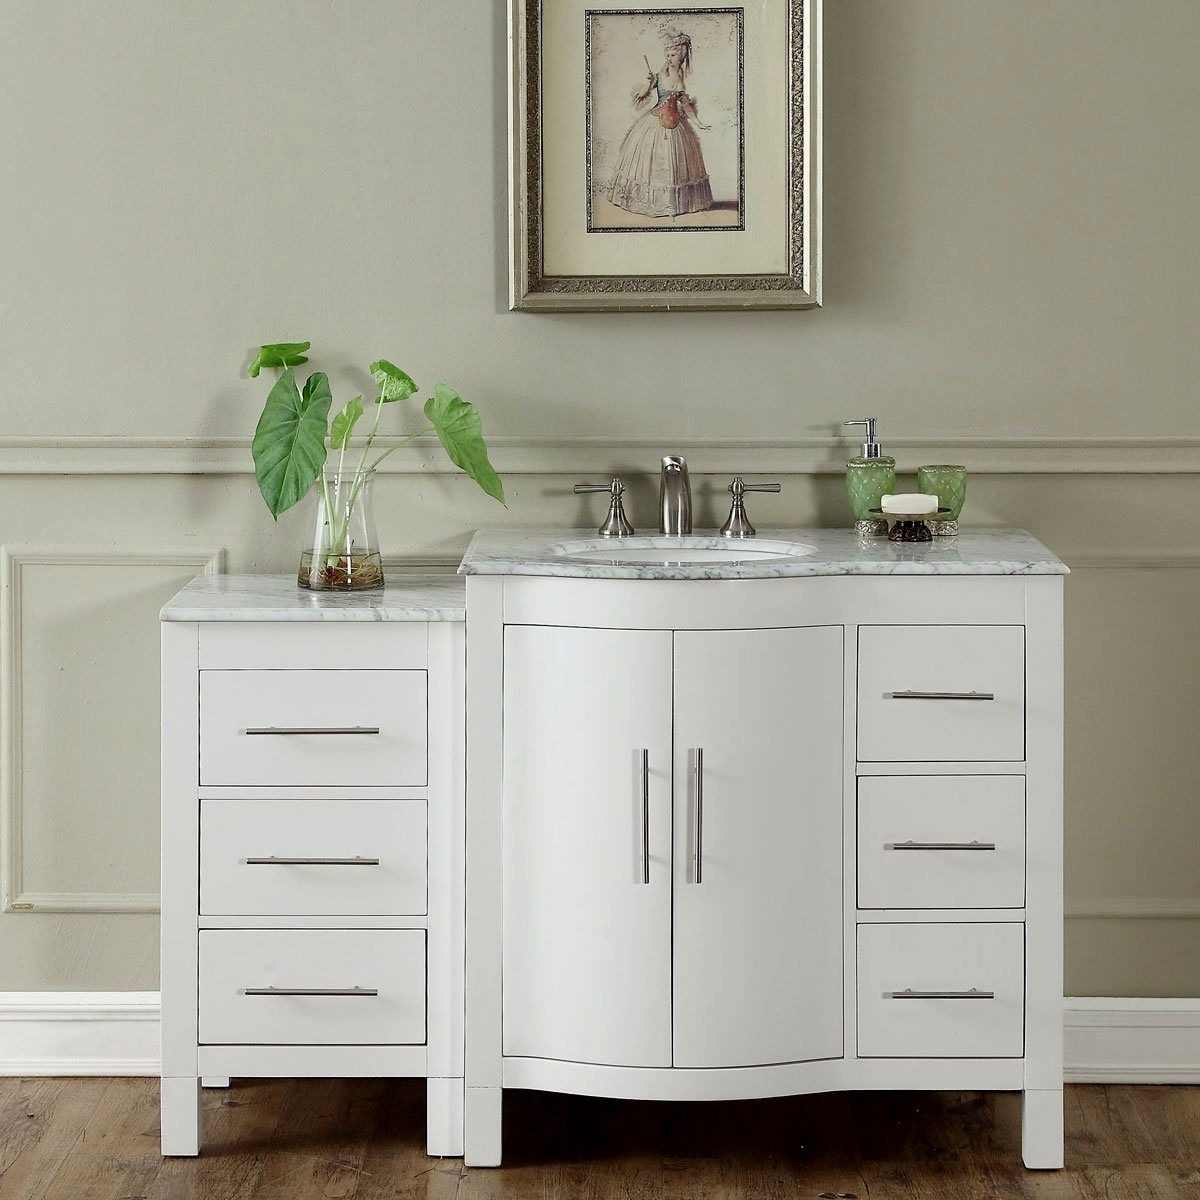 contemporary bathroom vanity 36 inch inspiration-Top Bathroom Vanity 36 Inch Gallery